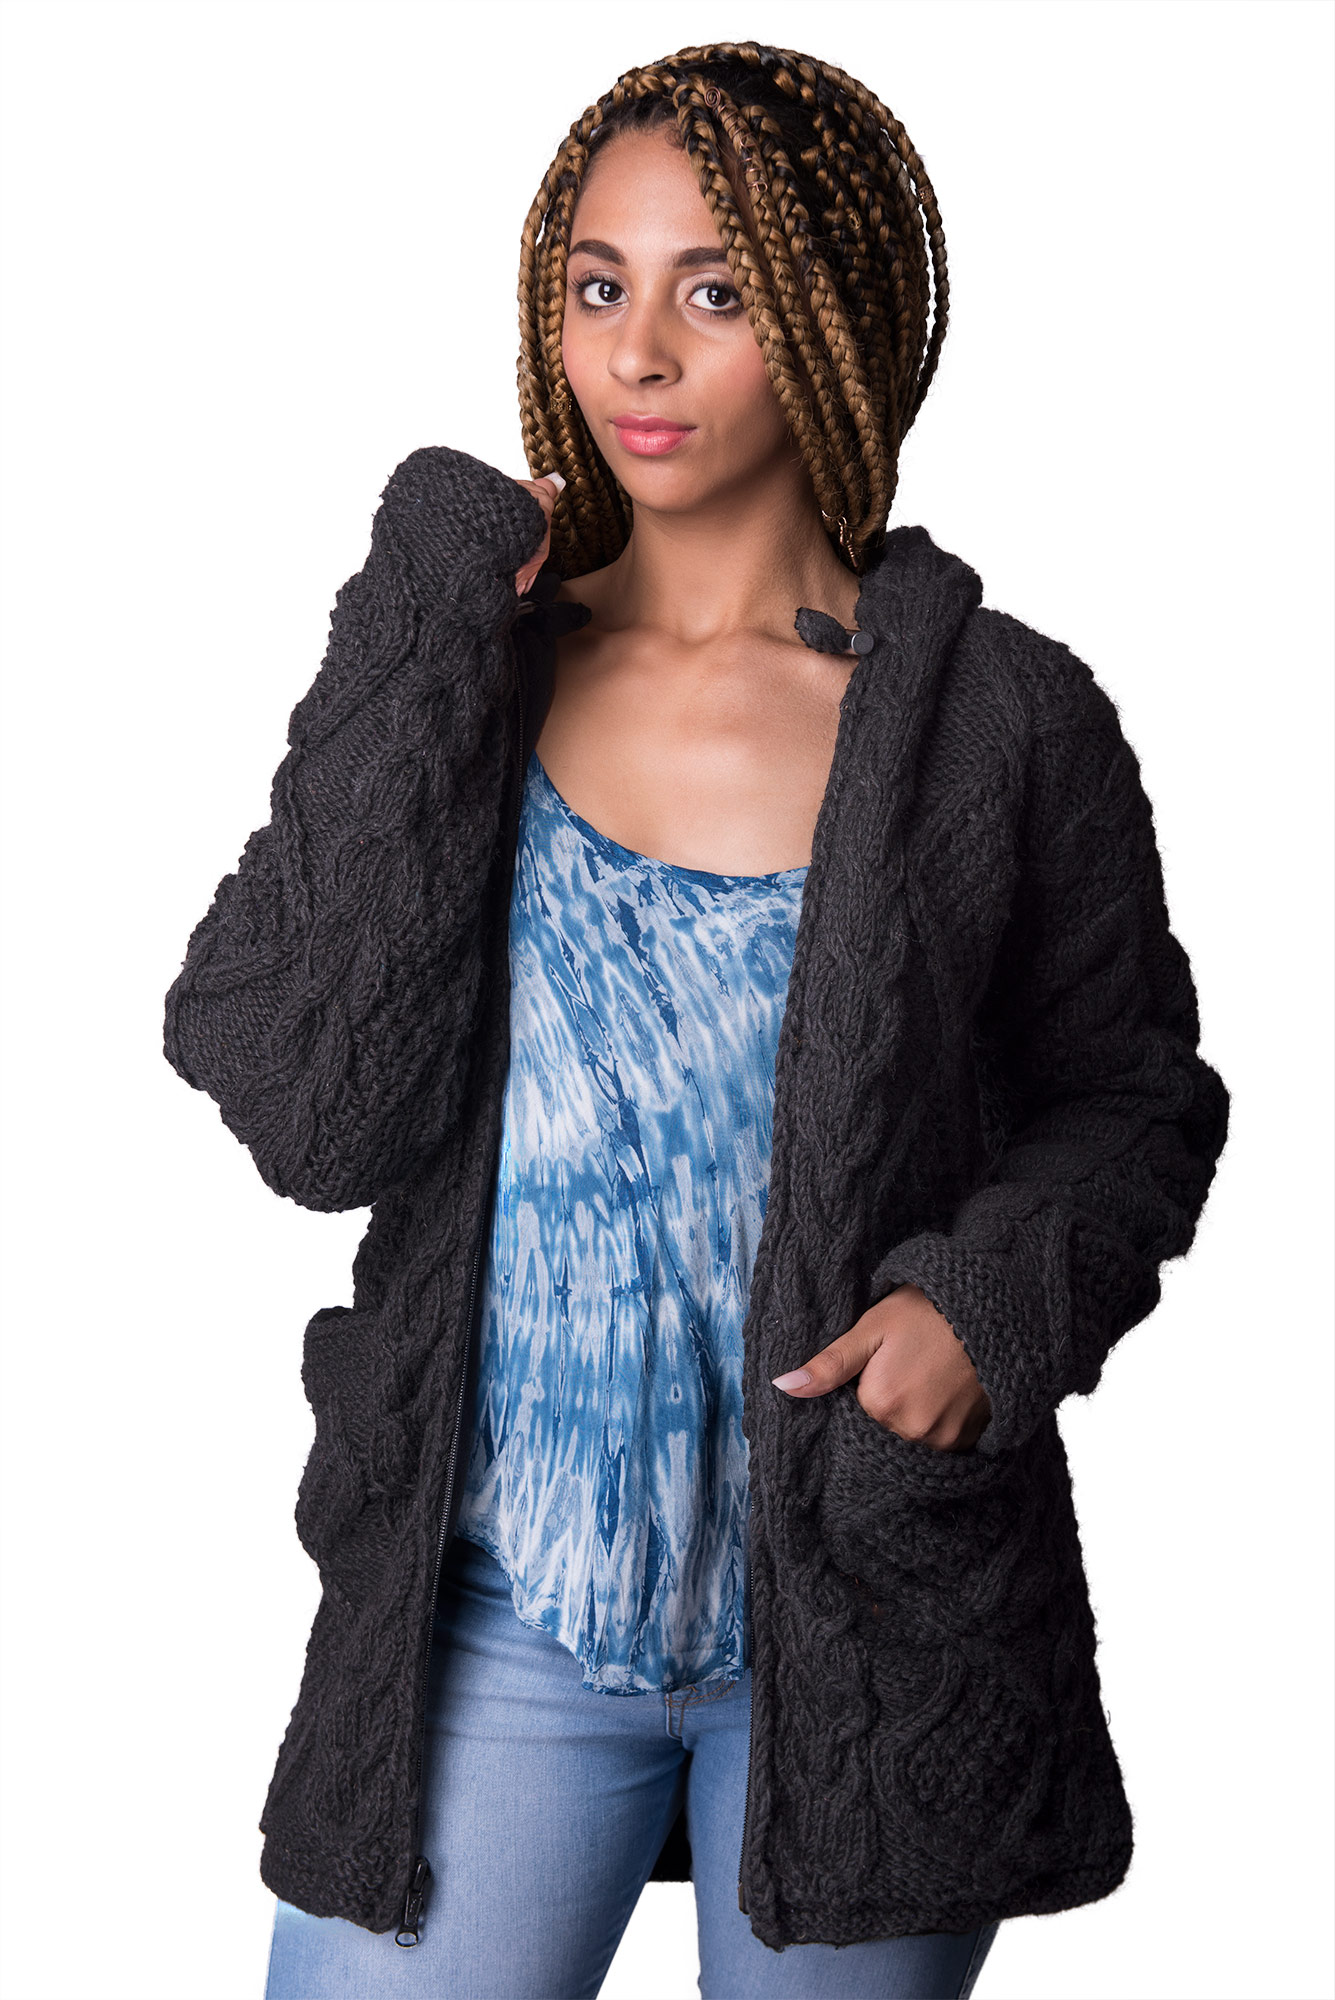 Wool Cable Knit Himalayan Mountain Jacket – Long Length Black